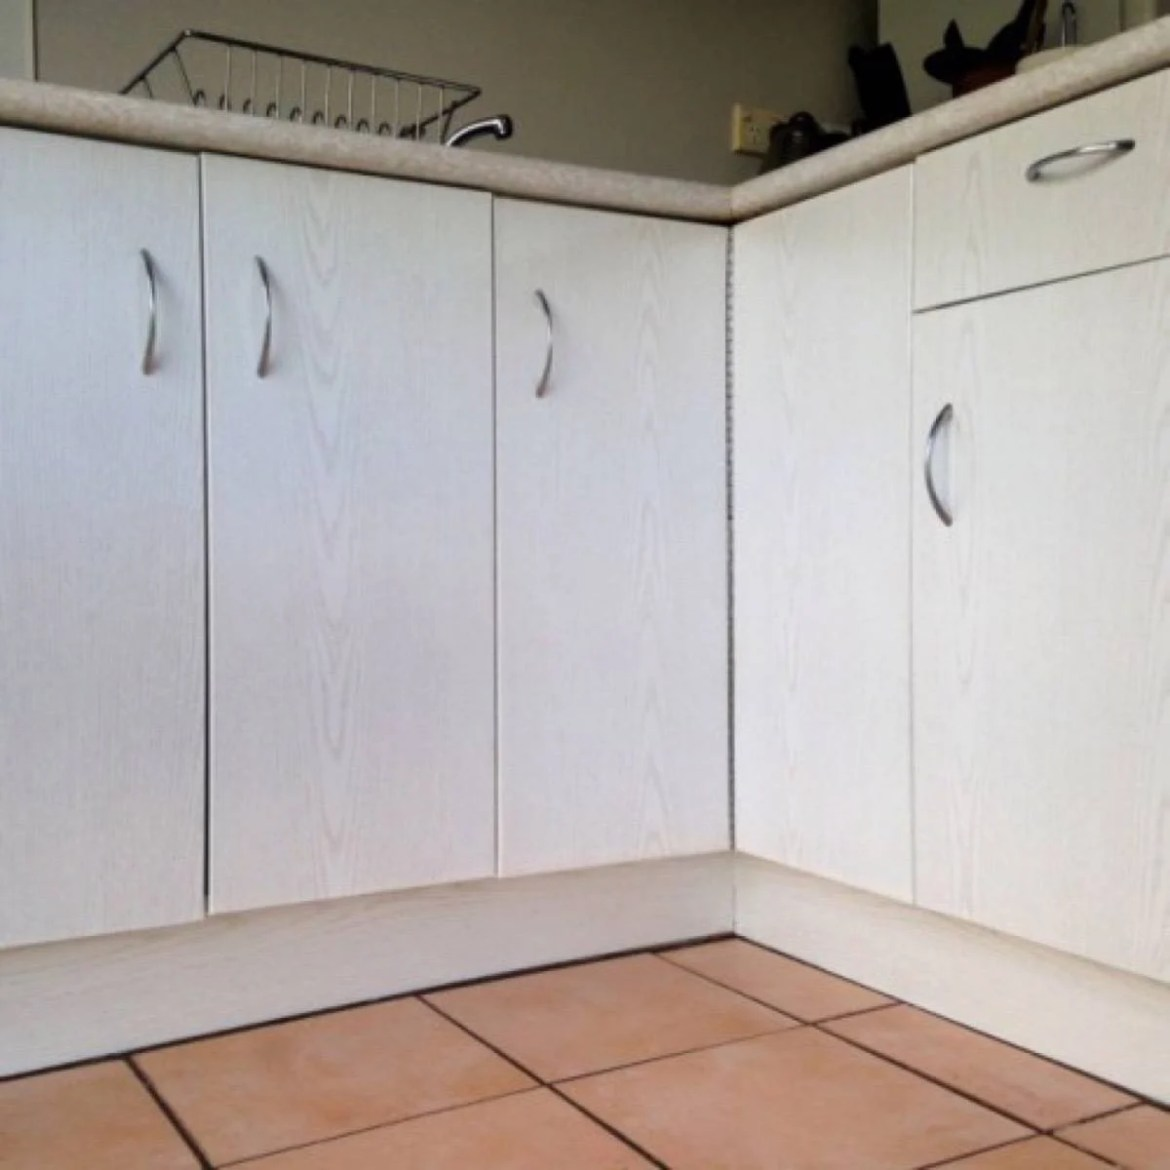 Vinyl-wrapped cupboards